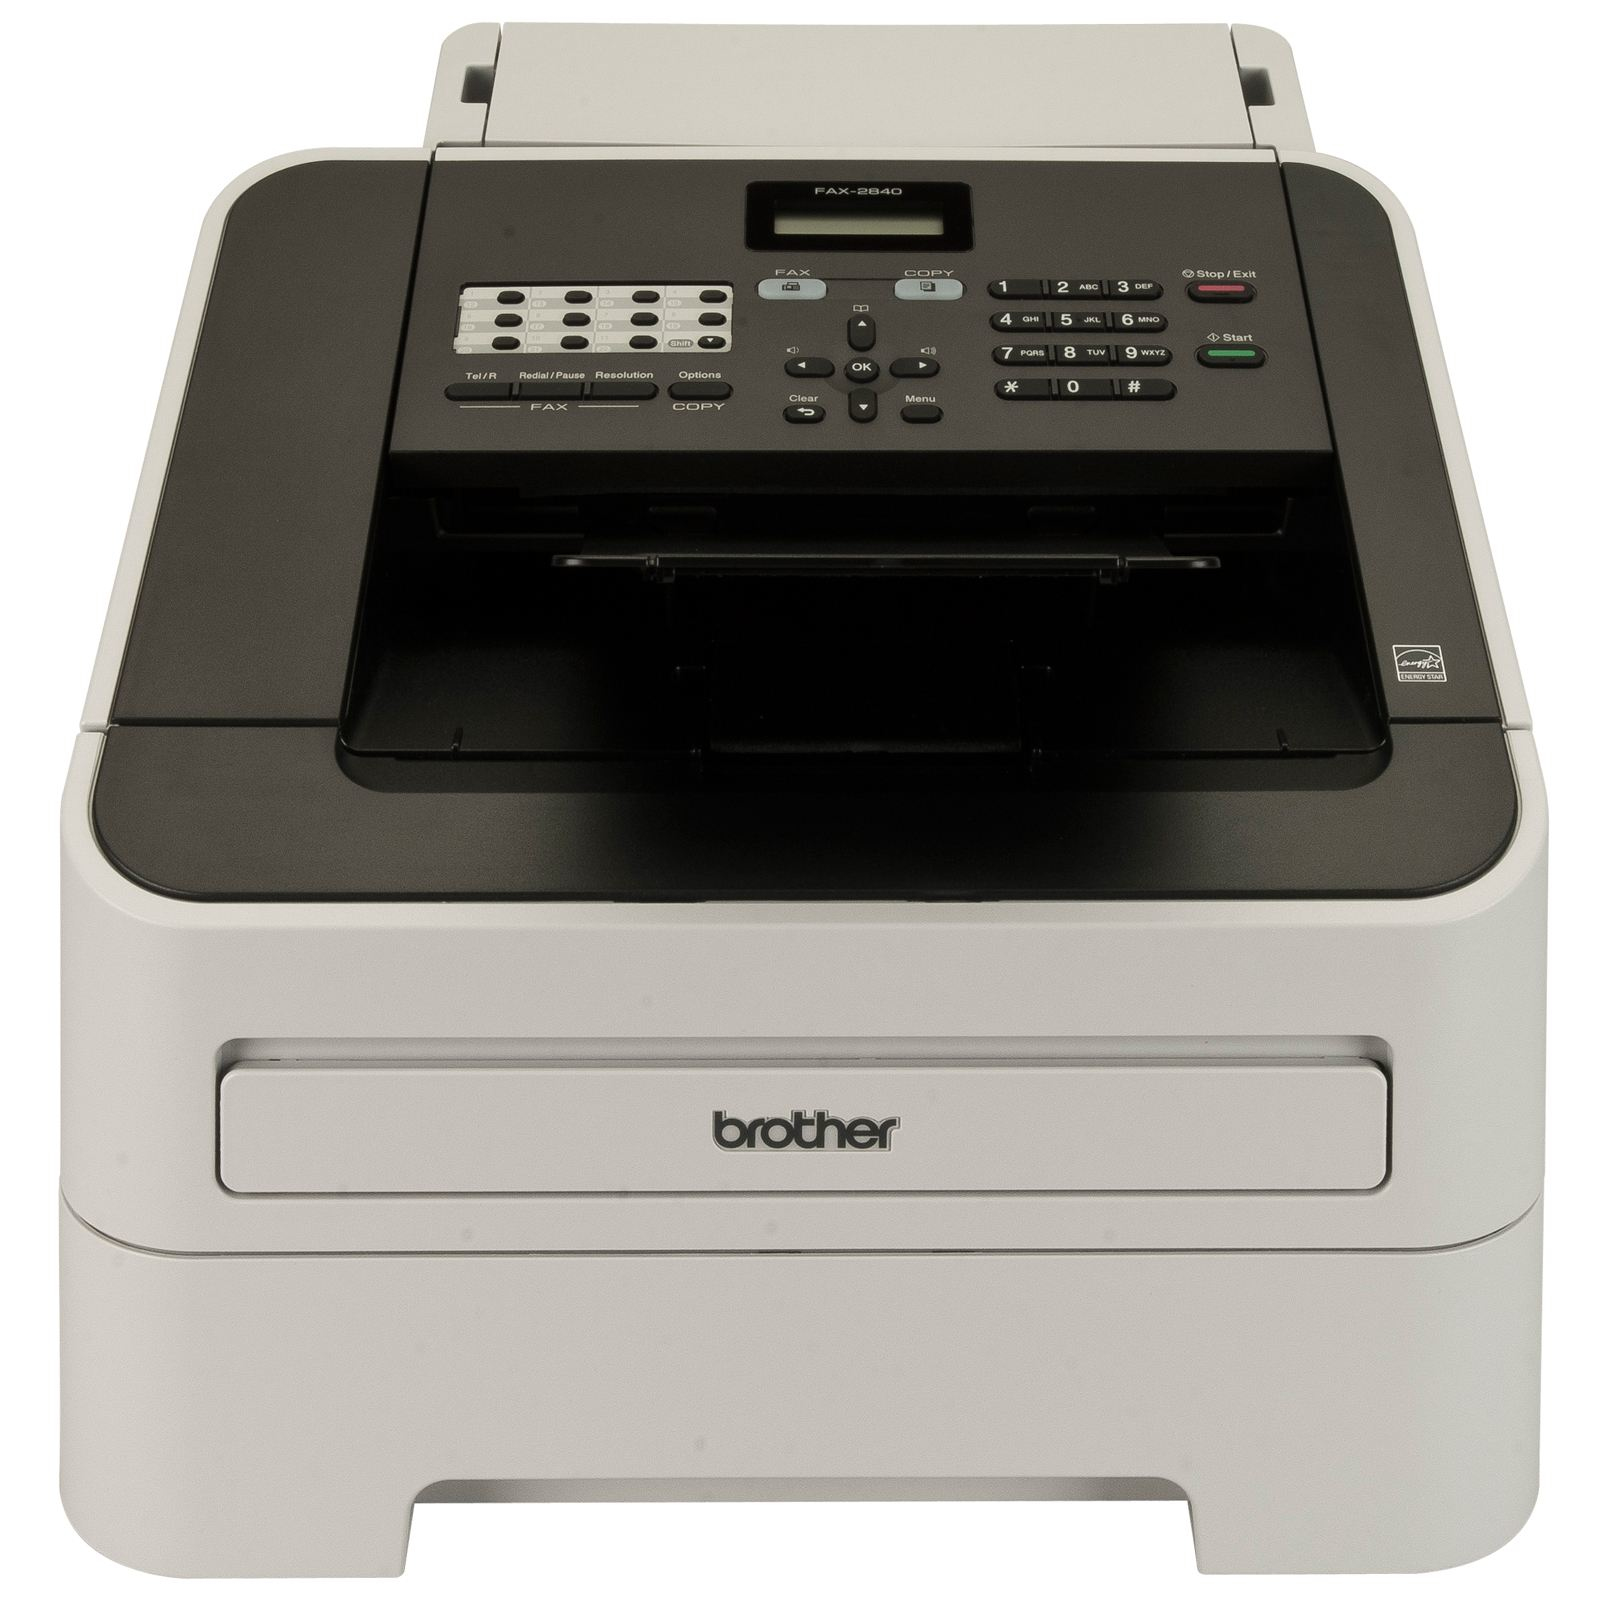 brother Brother Fax-2840 Mono Laser Fax Fax2840zu1 - AD01